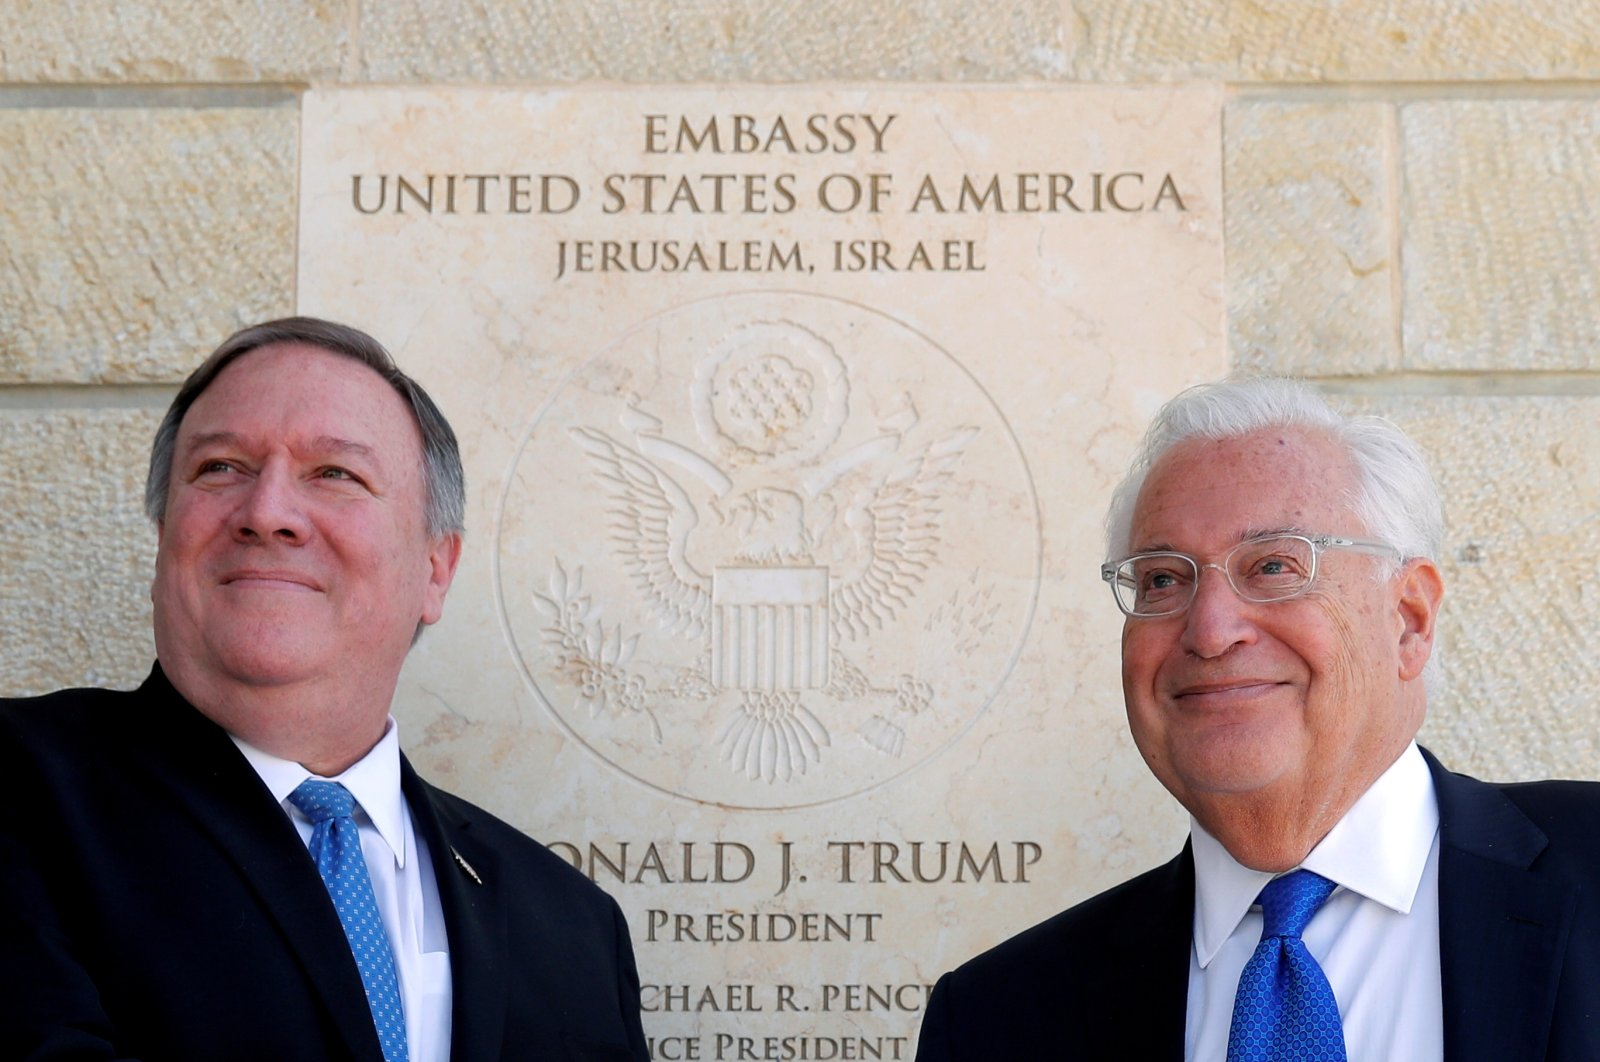 U.S. Secretary of State Mike Pompeo (L) and U.S. Ambassador to Israel David Friedman stand next to the dedication plaque at the U.S. Embassy in Jerusalem, March 21, 2019. (Reuters Photo)